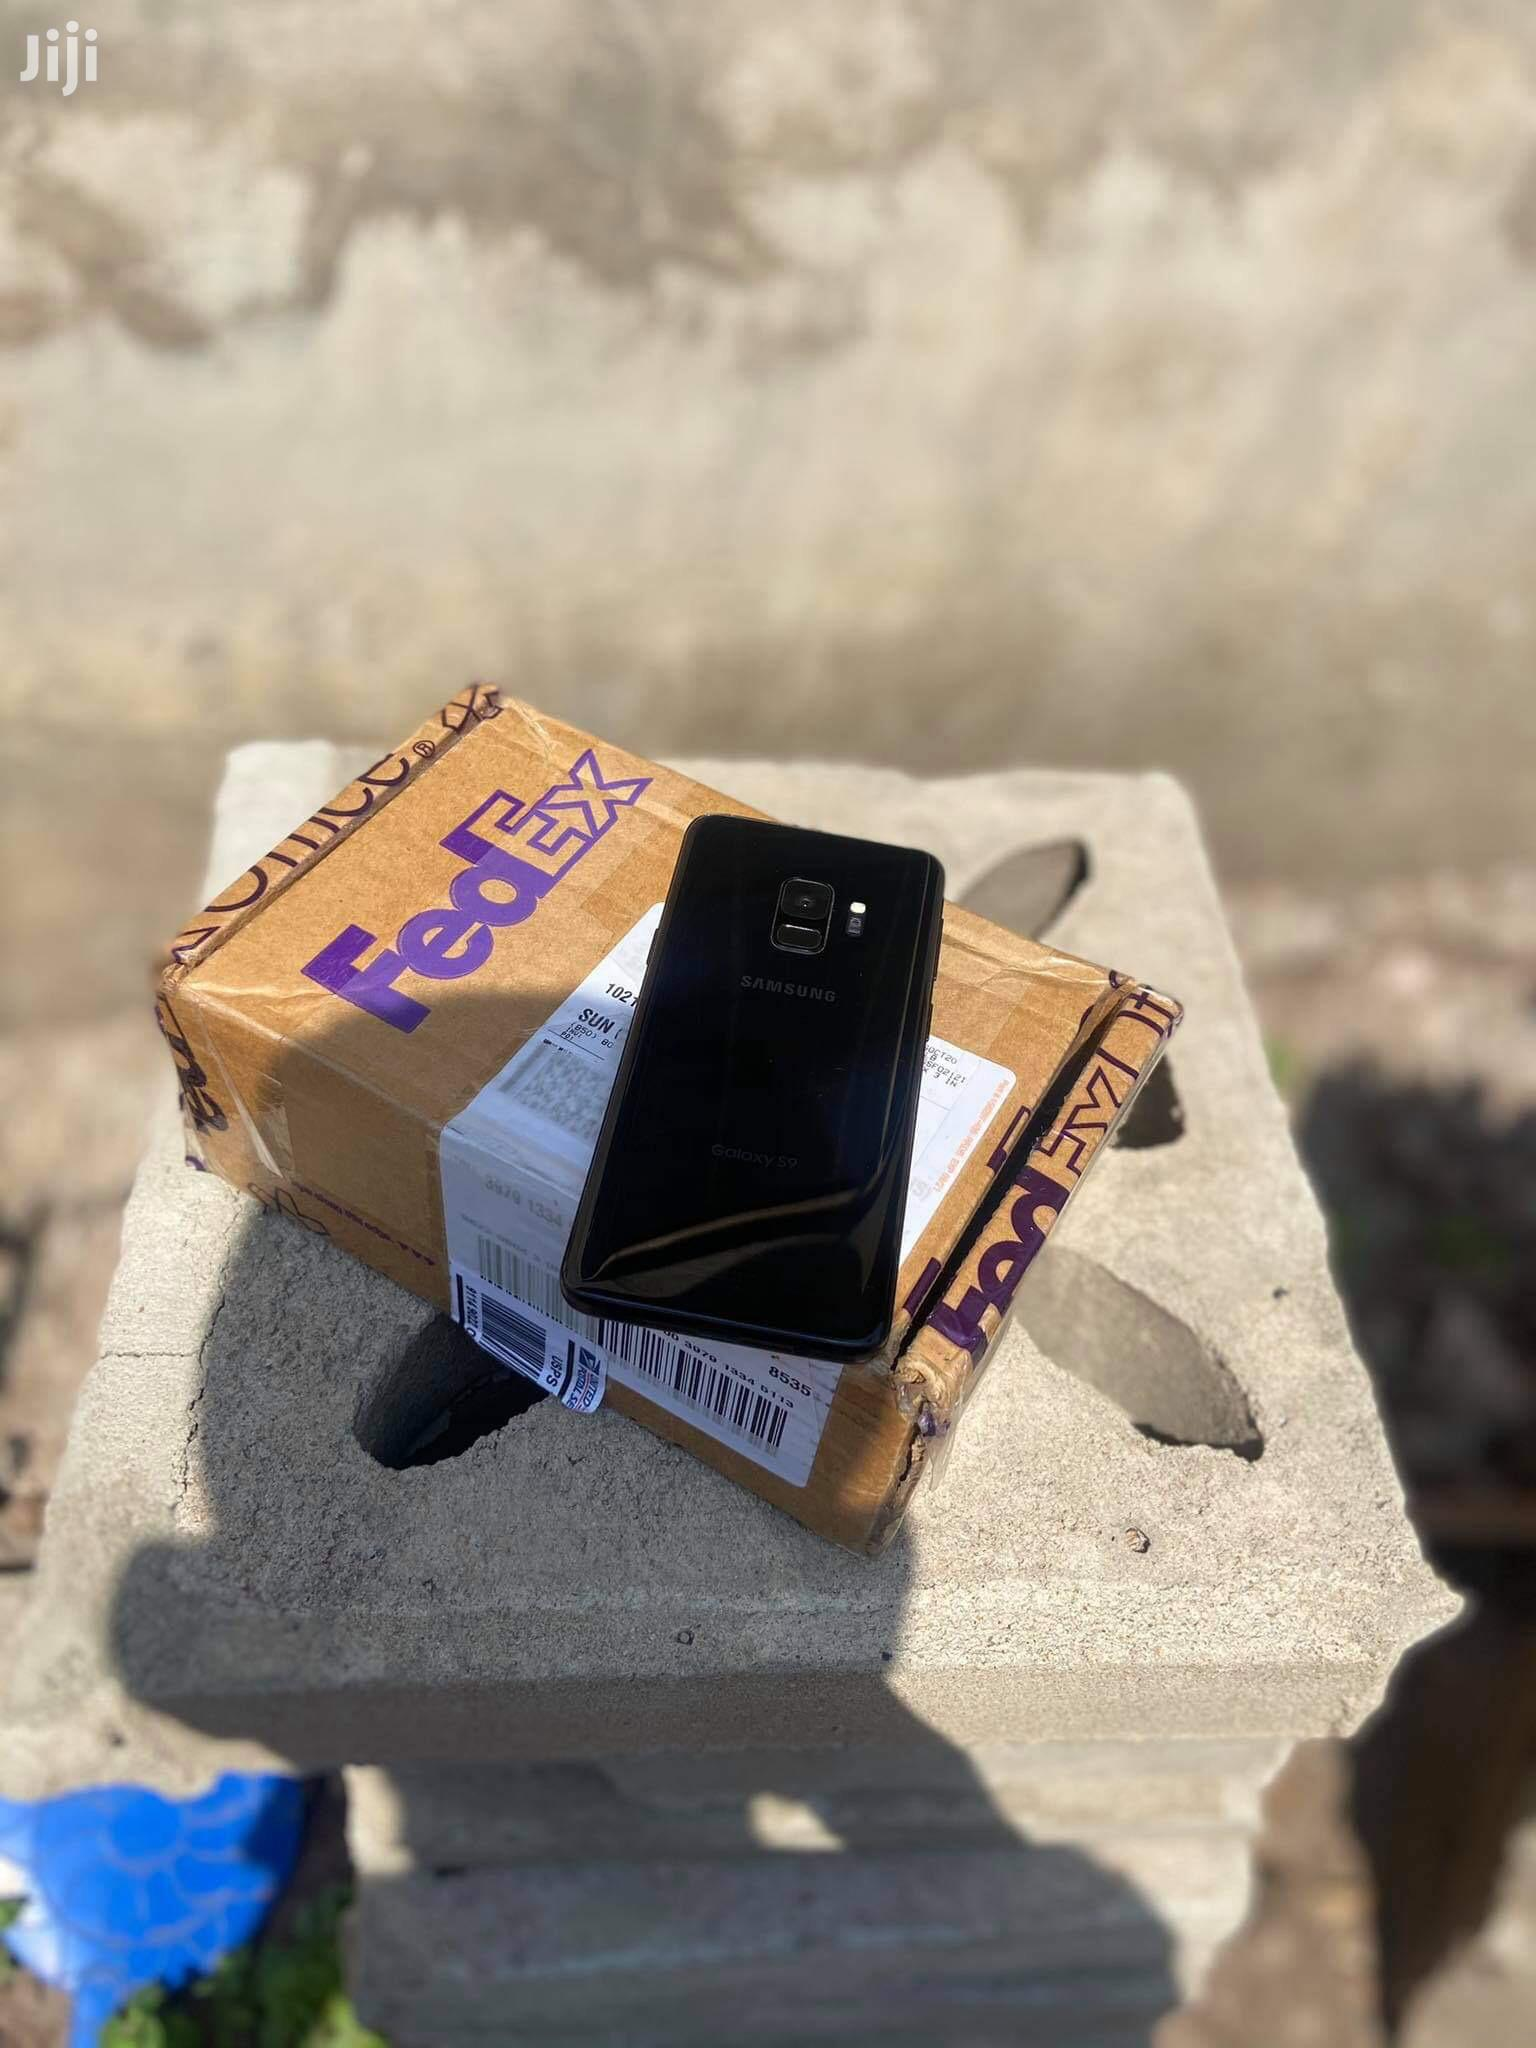 Samsung Galaxy S9 64 GB Black | Mobile Phones for sale in East Legon, Greater Accra, Ghana